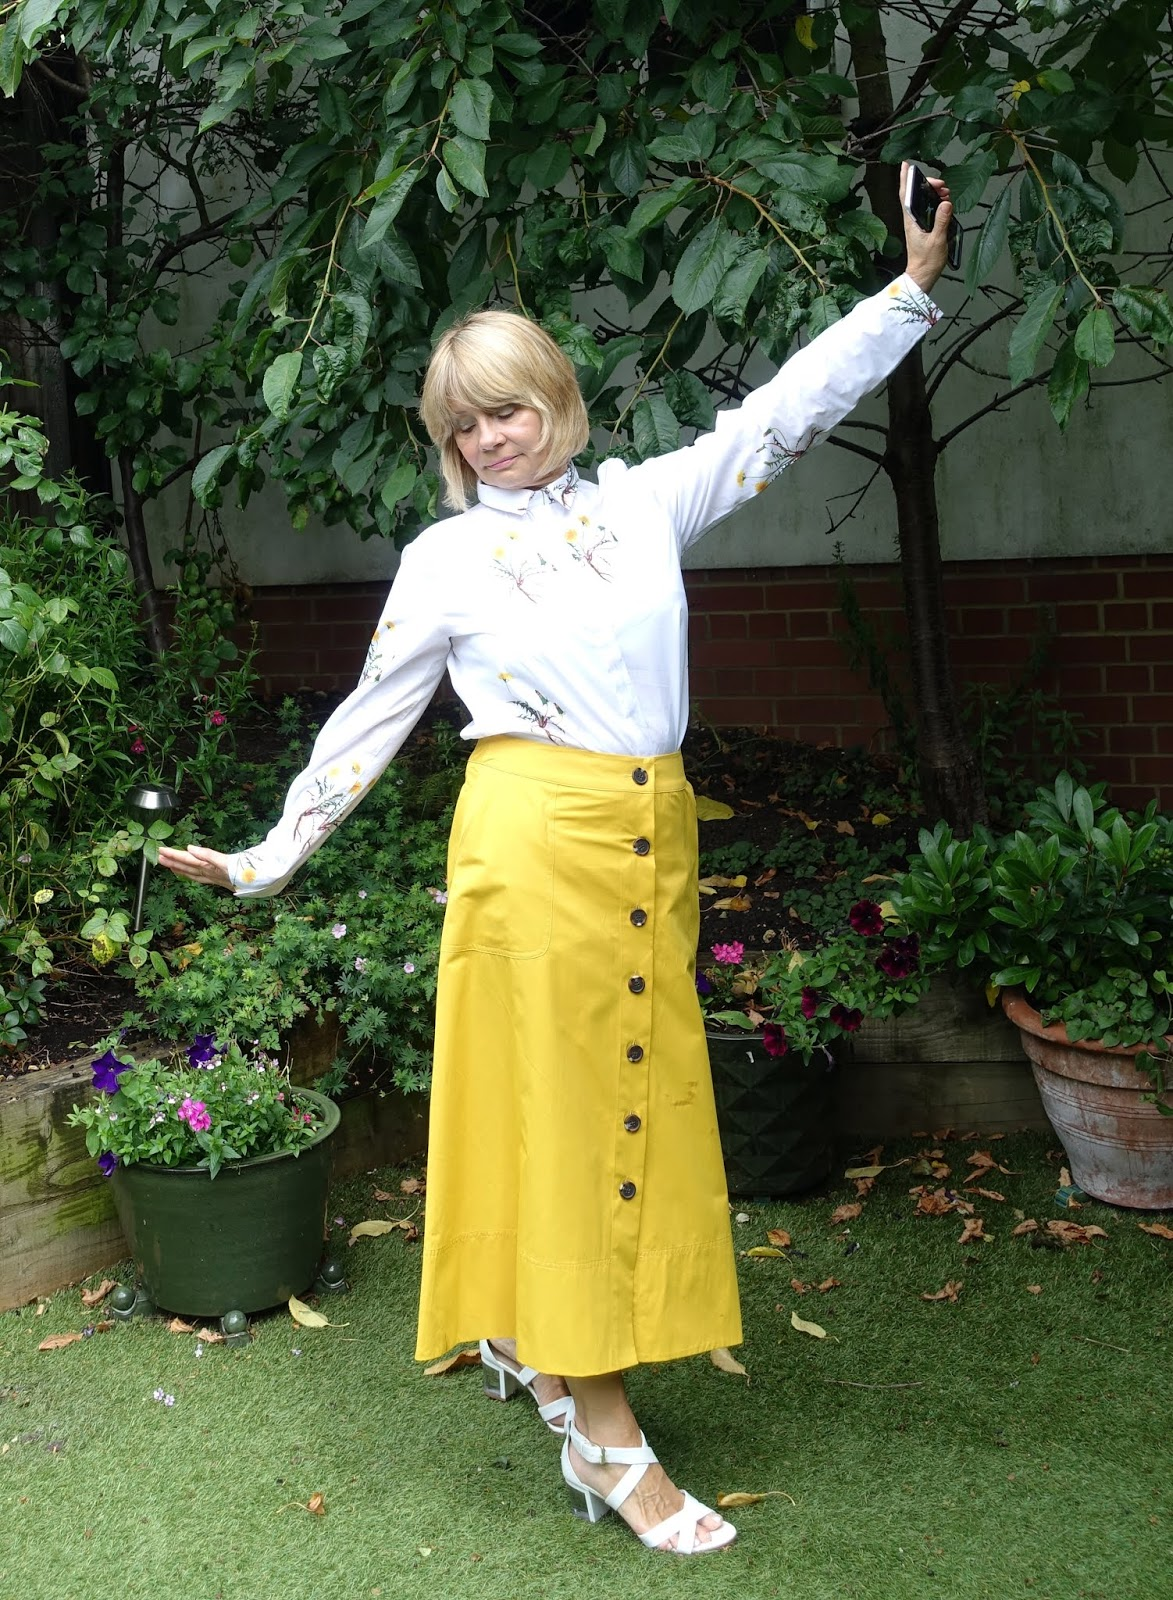 Over 50s woman in golden yellow midi skirt and white shirt with yellow flower print